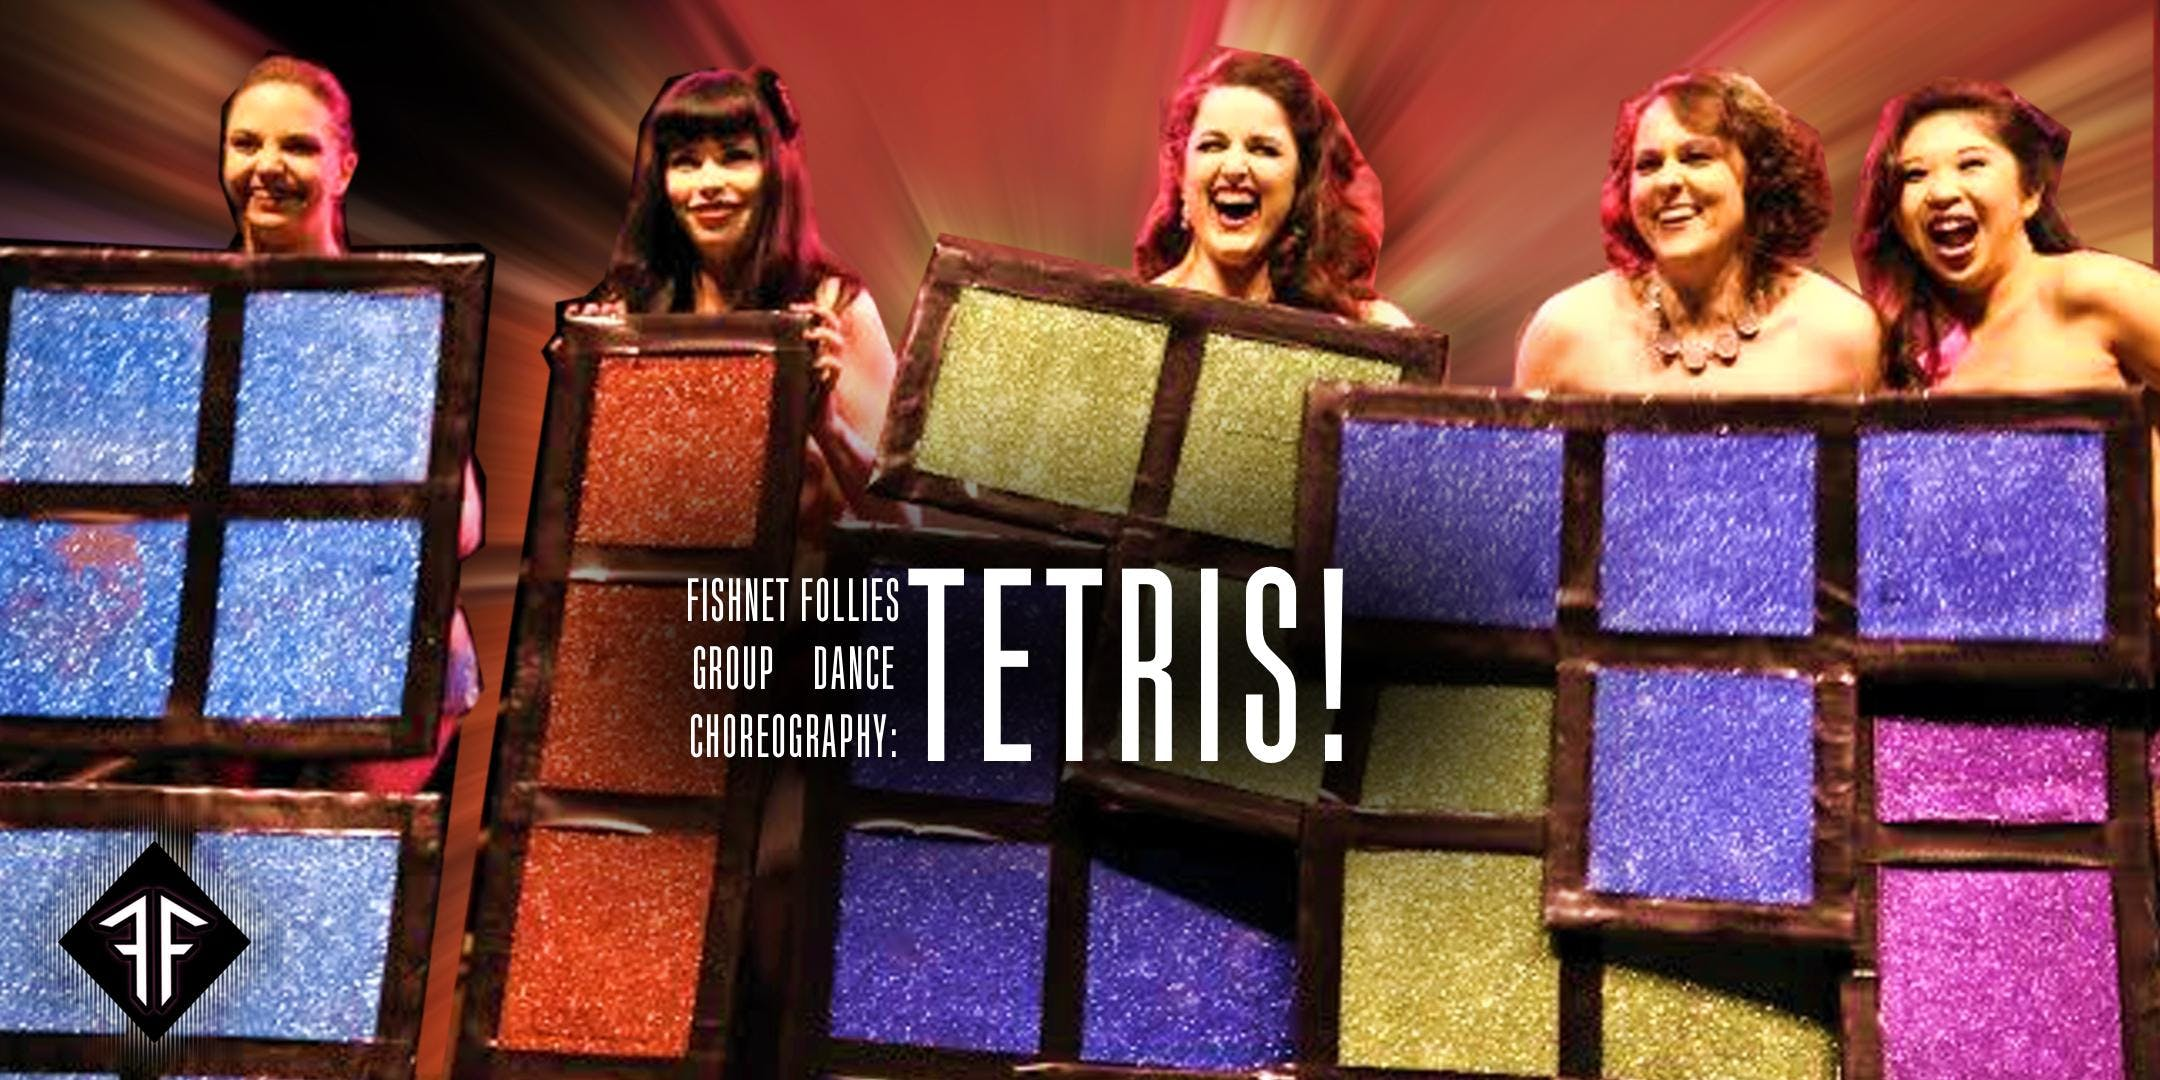 Burlesque Group Dance Choreography TETRIS Level 3 - Fishnet Follies